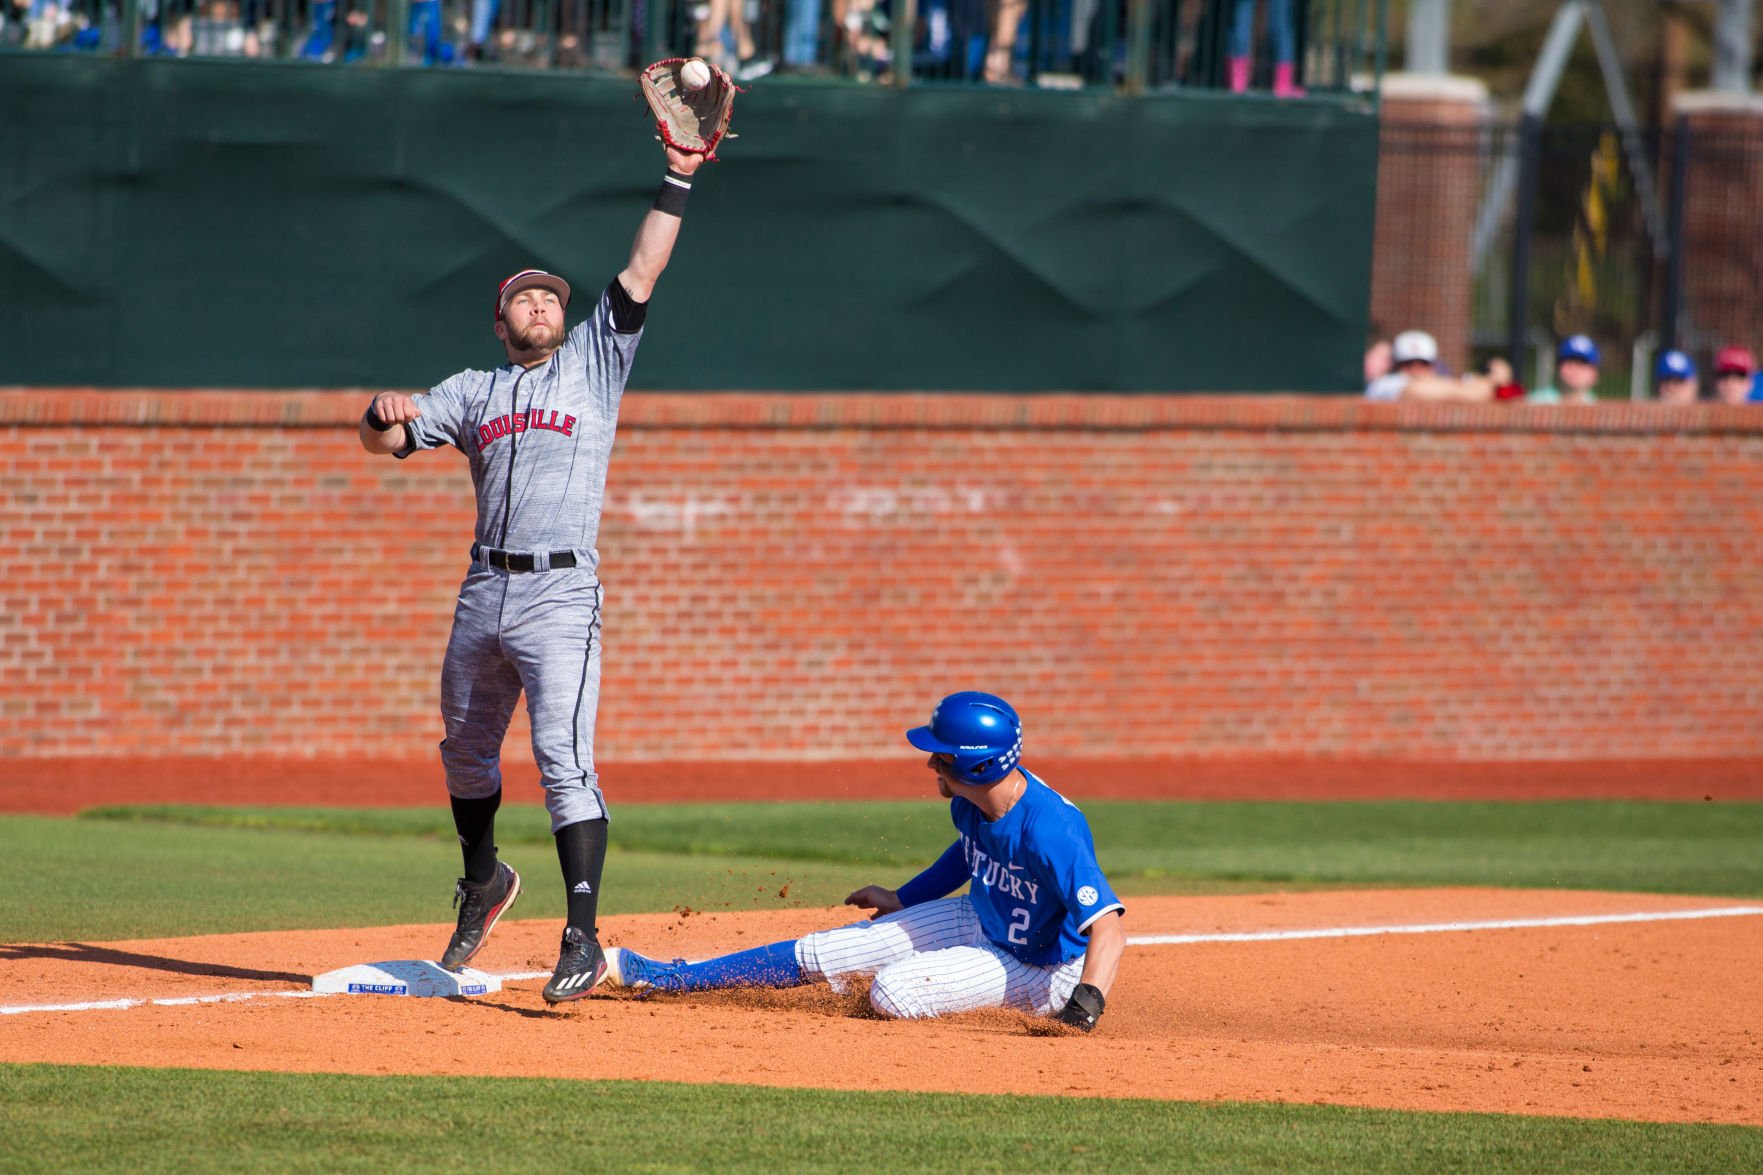 Uk Baseball Heads To Uofl Looking To Complete Regular